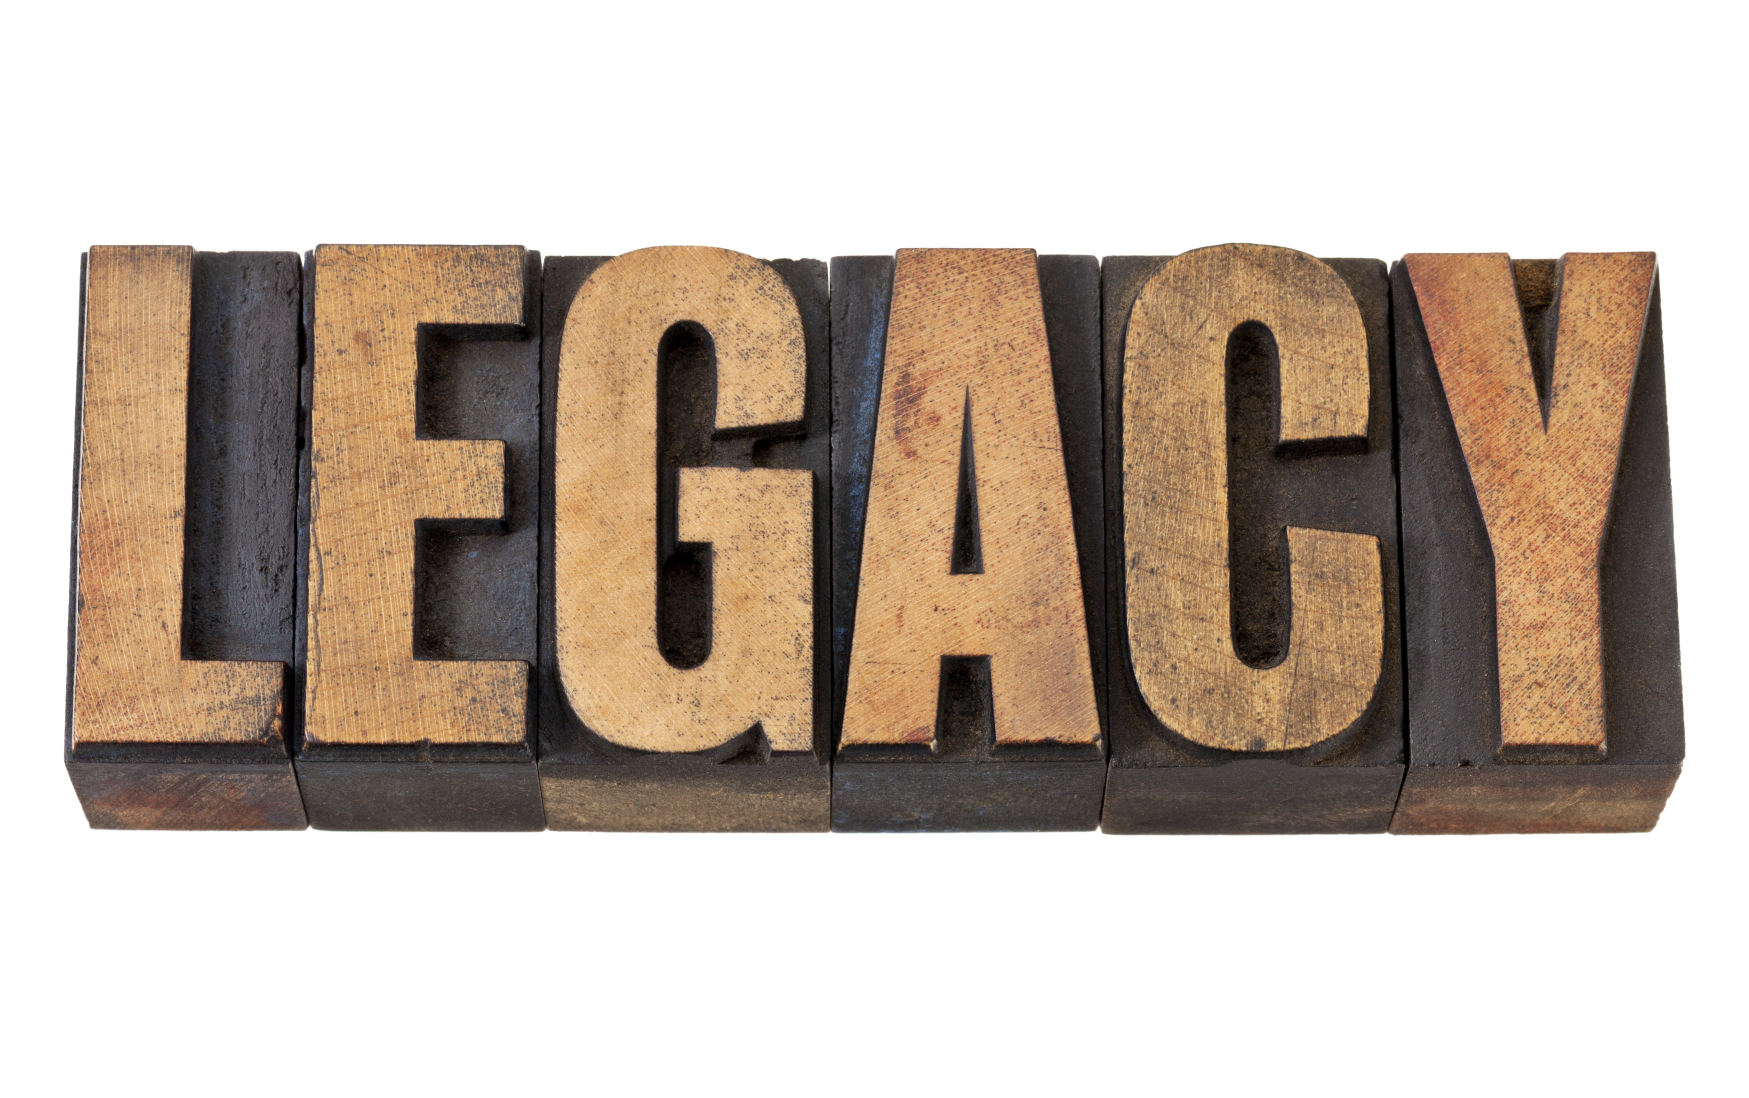 What will become your legacy?